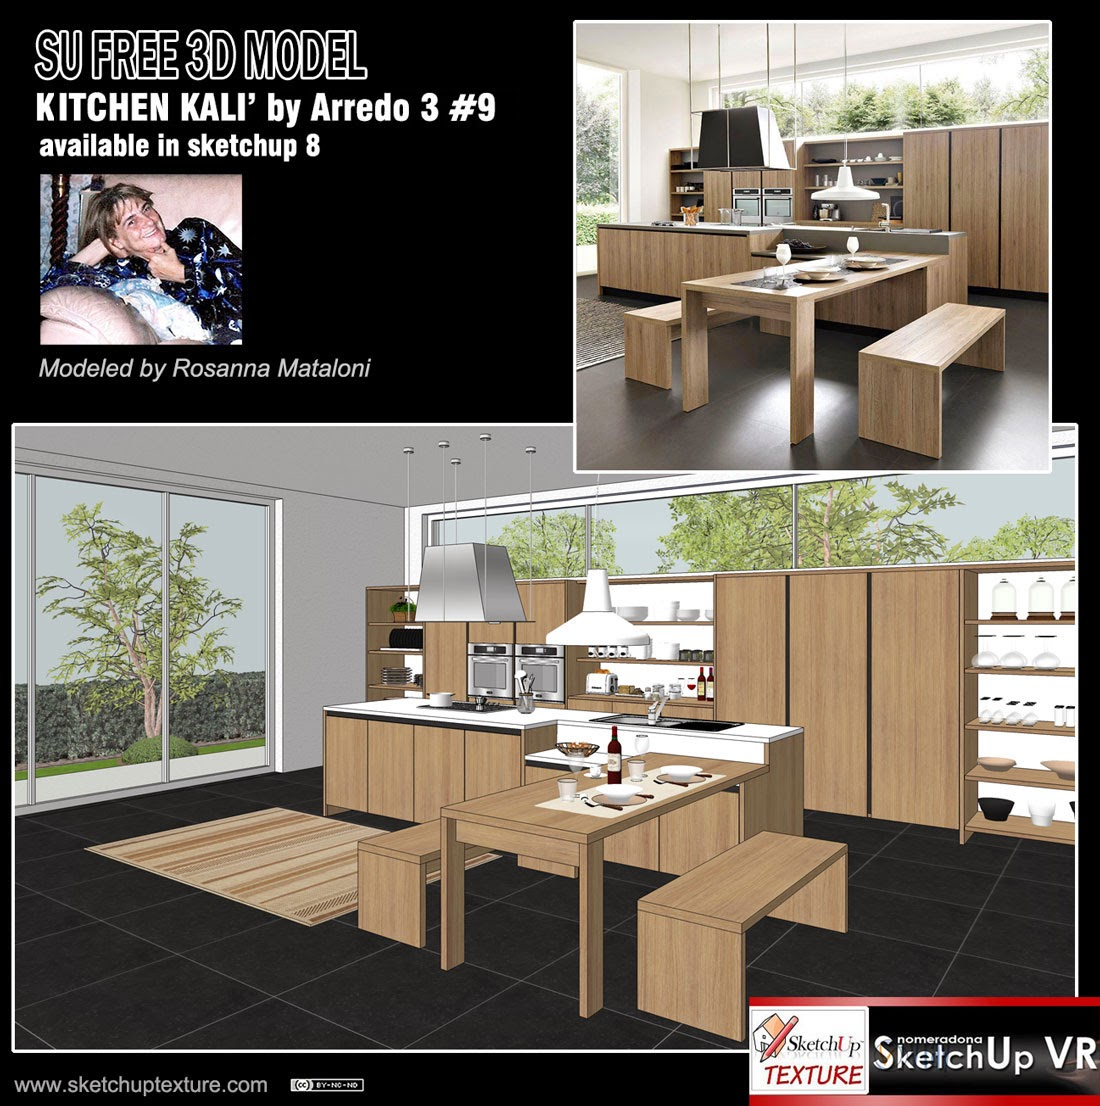 Modern Kitchen 3d Model sketchup texture: free sketchup 3d model modern kitchen #9 italian